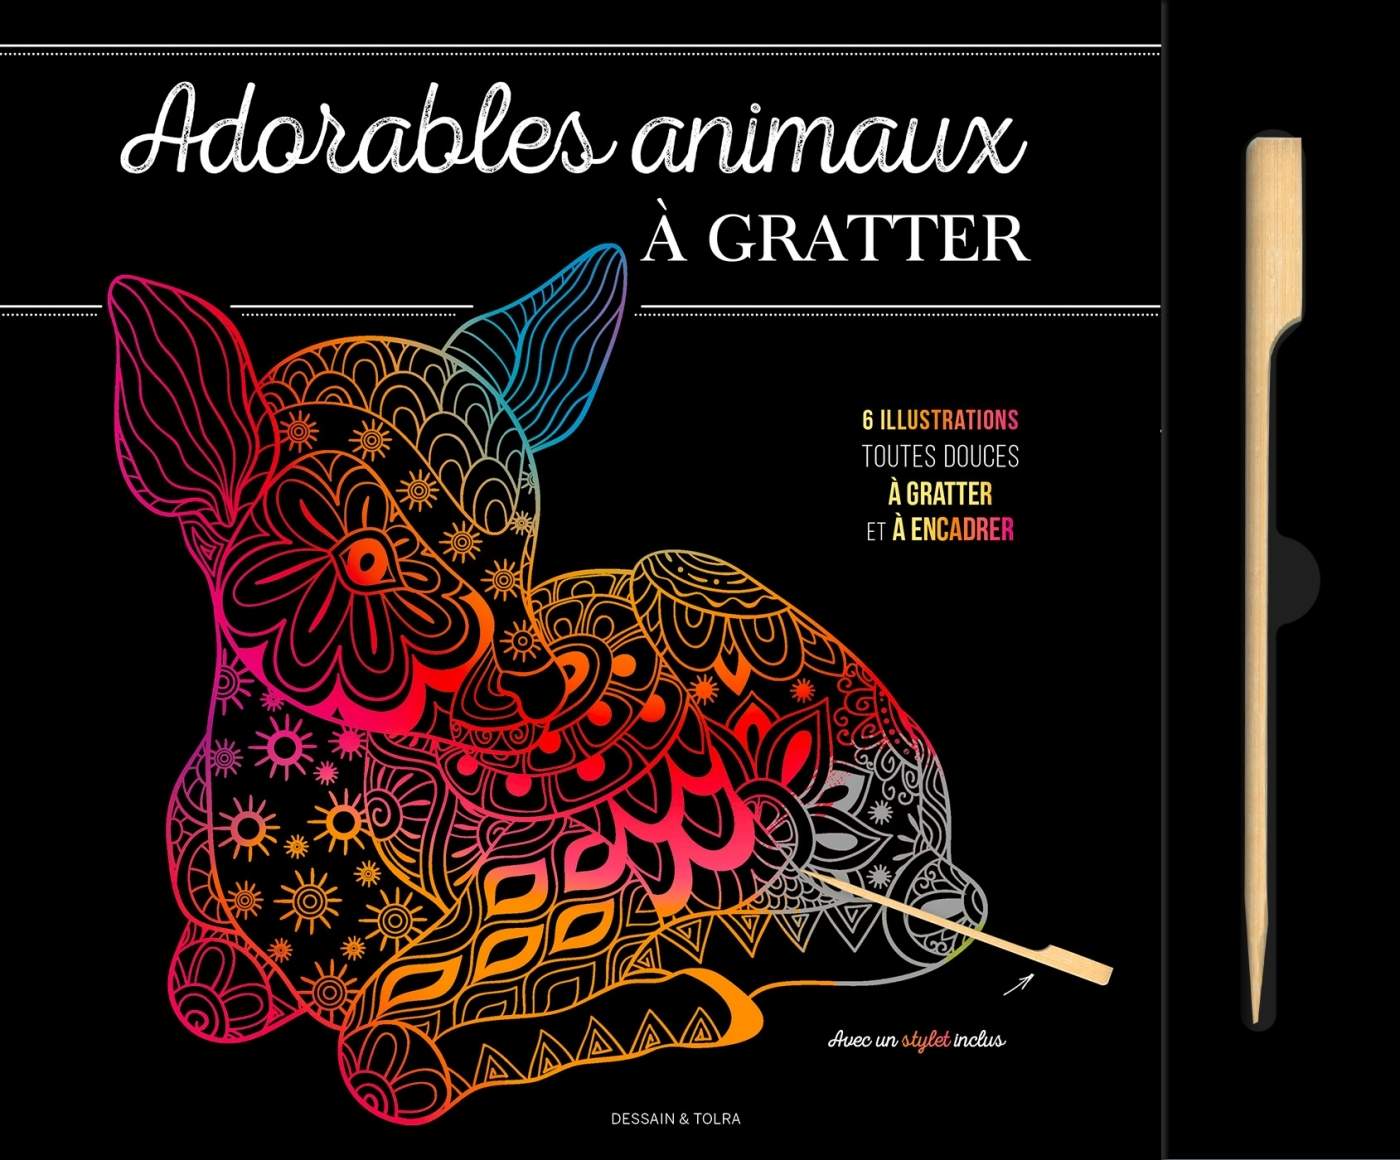 ADORABLES ANIMAUX A GRATTER